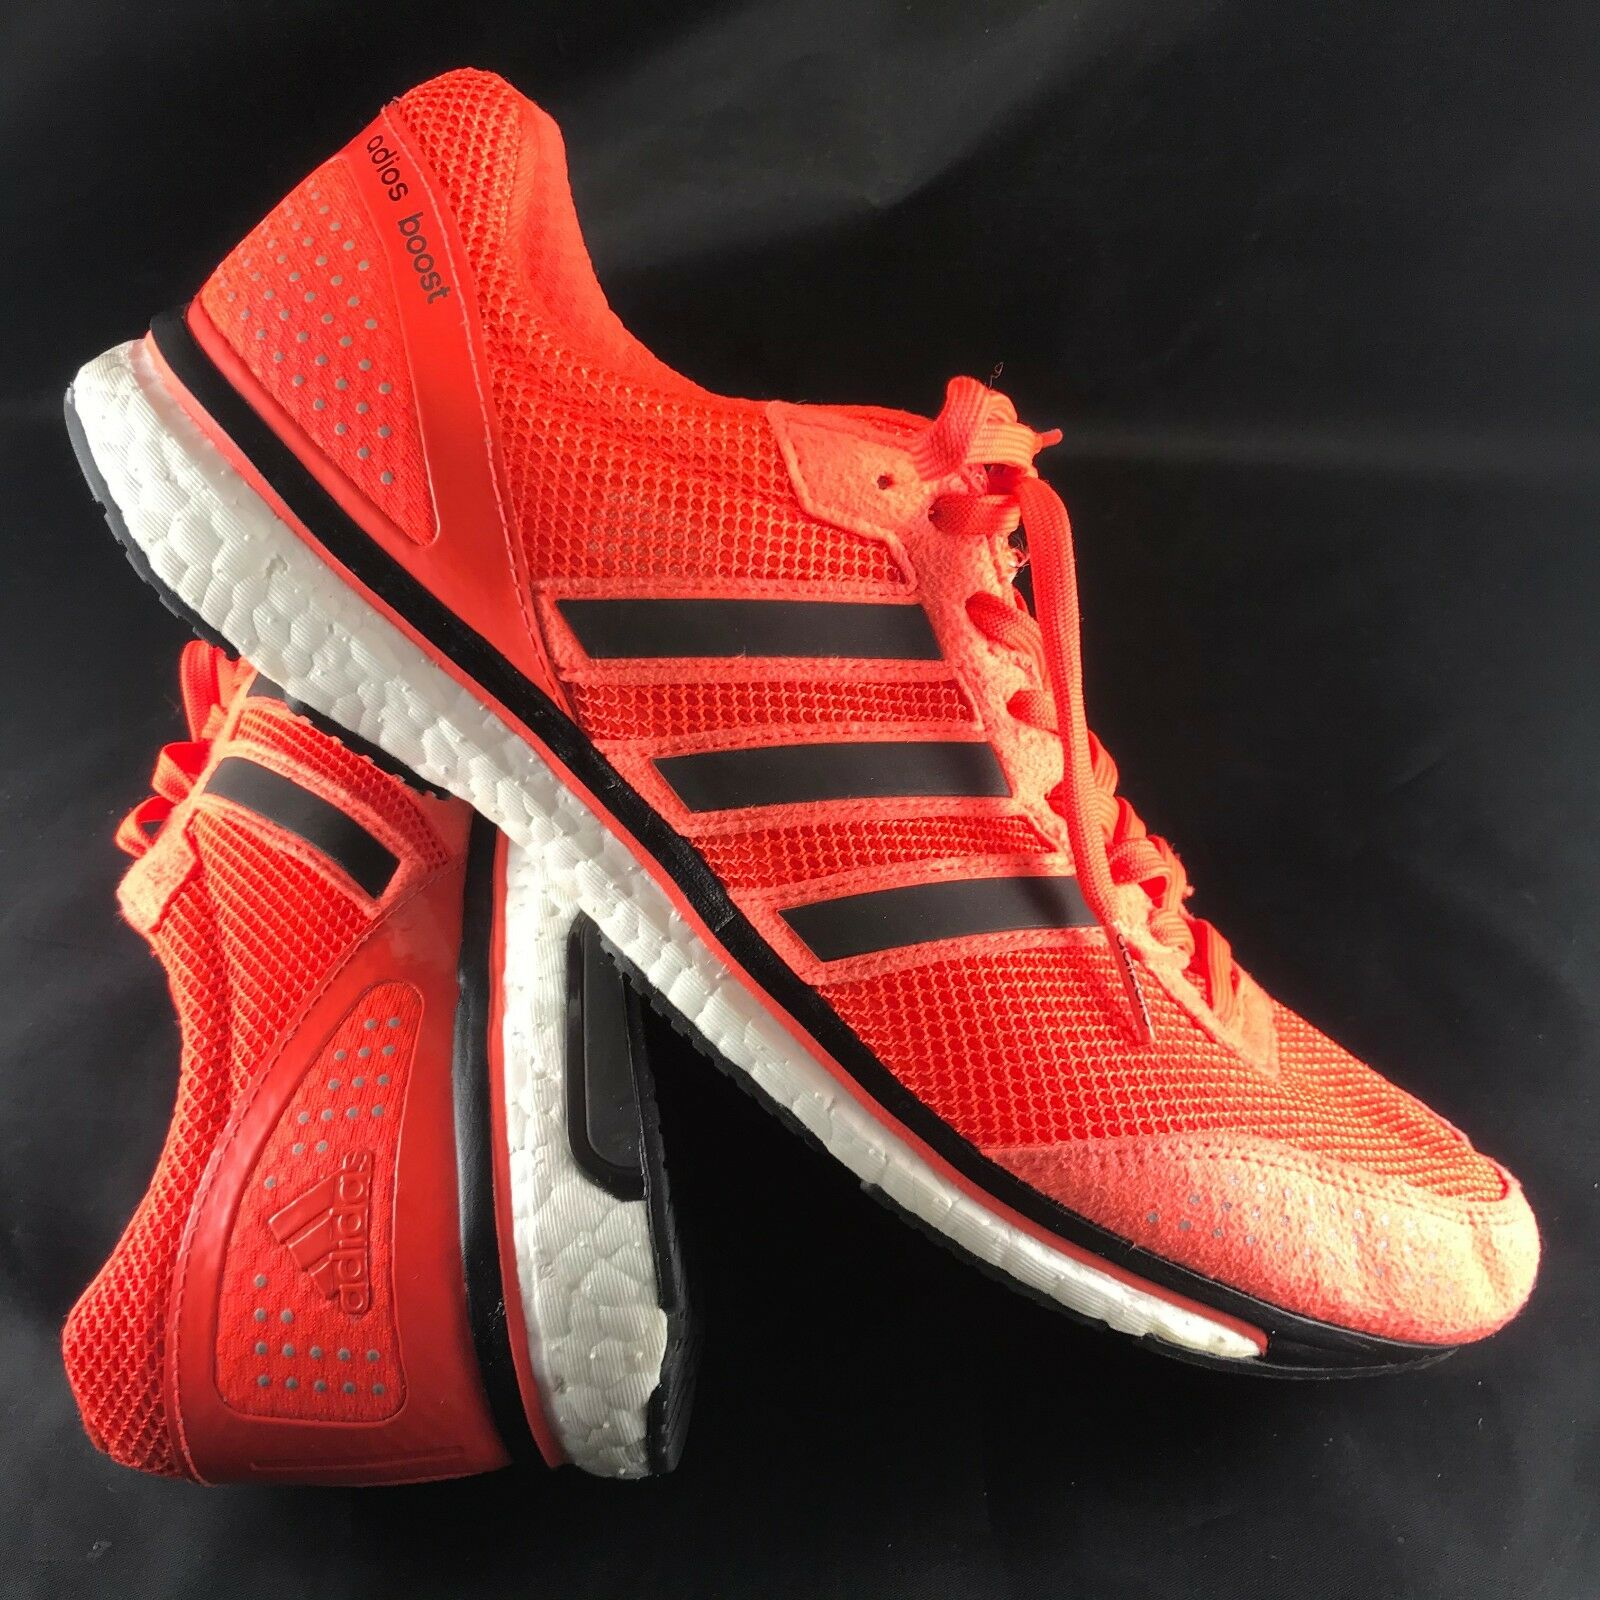 ADIDAS ADIOS BOOST Mens Solar Red Black Stripes Size 12 US, 46 2 3 EUR 11 1 2 UK